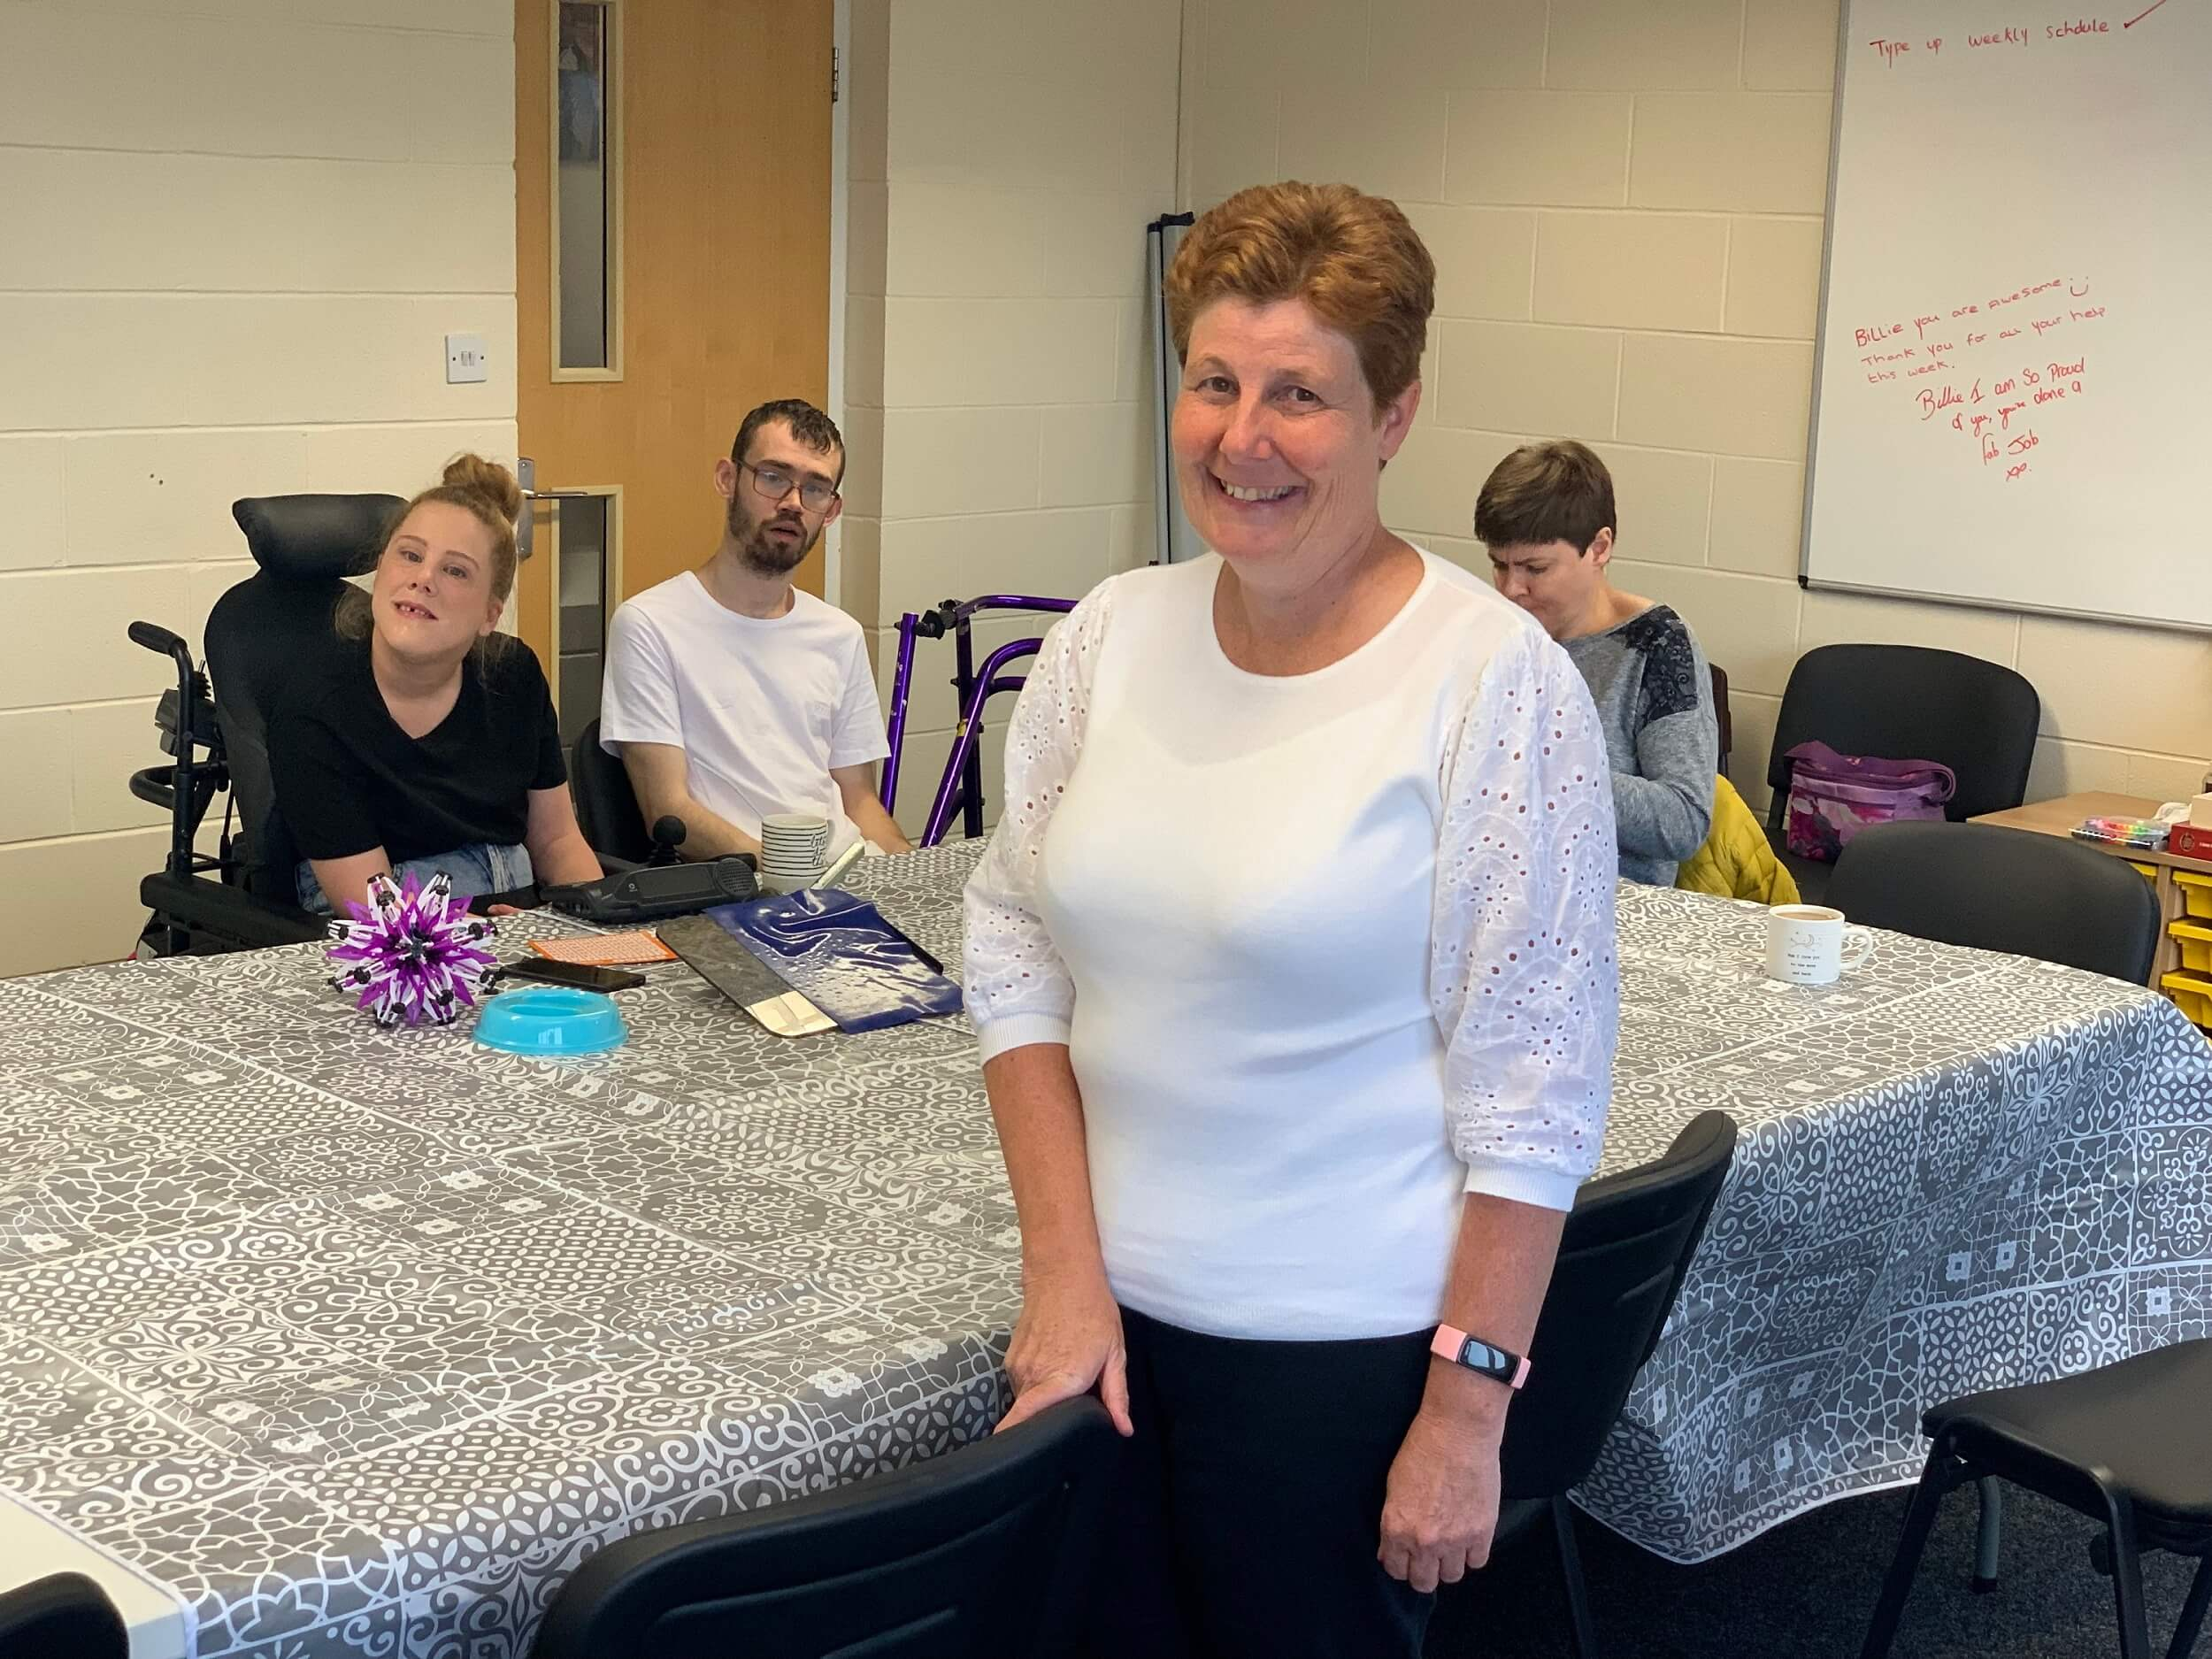 Family-run care business opens its 'happy place' in Barnsley